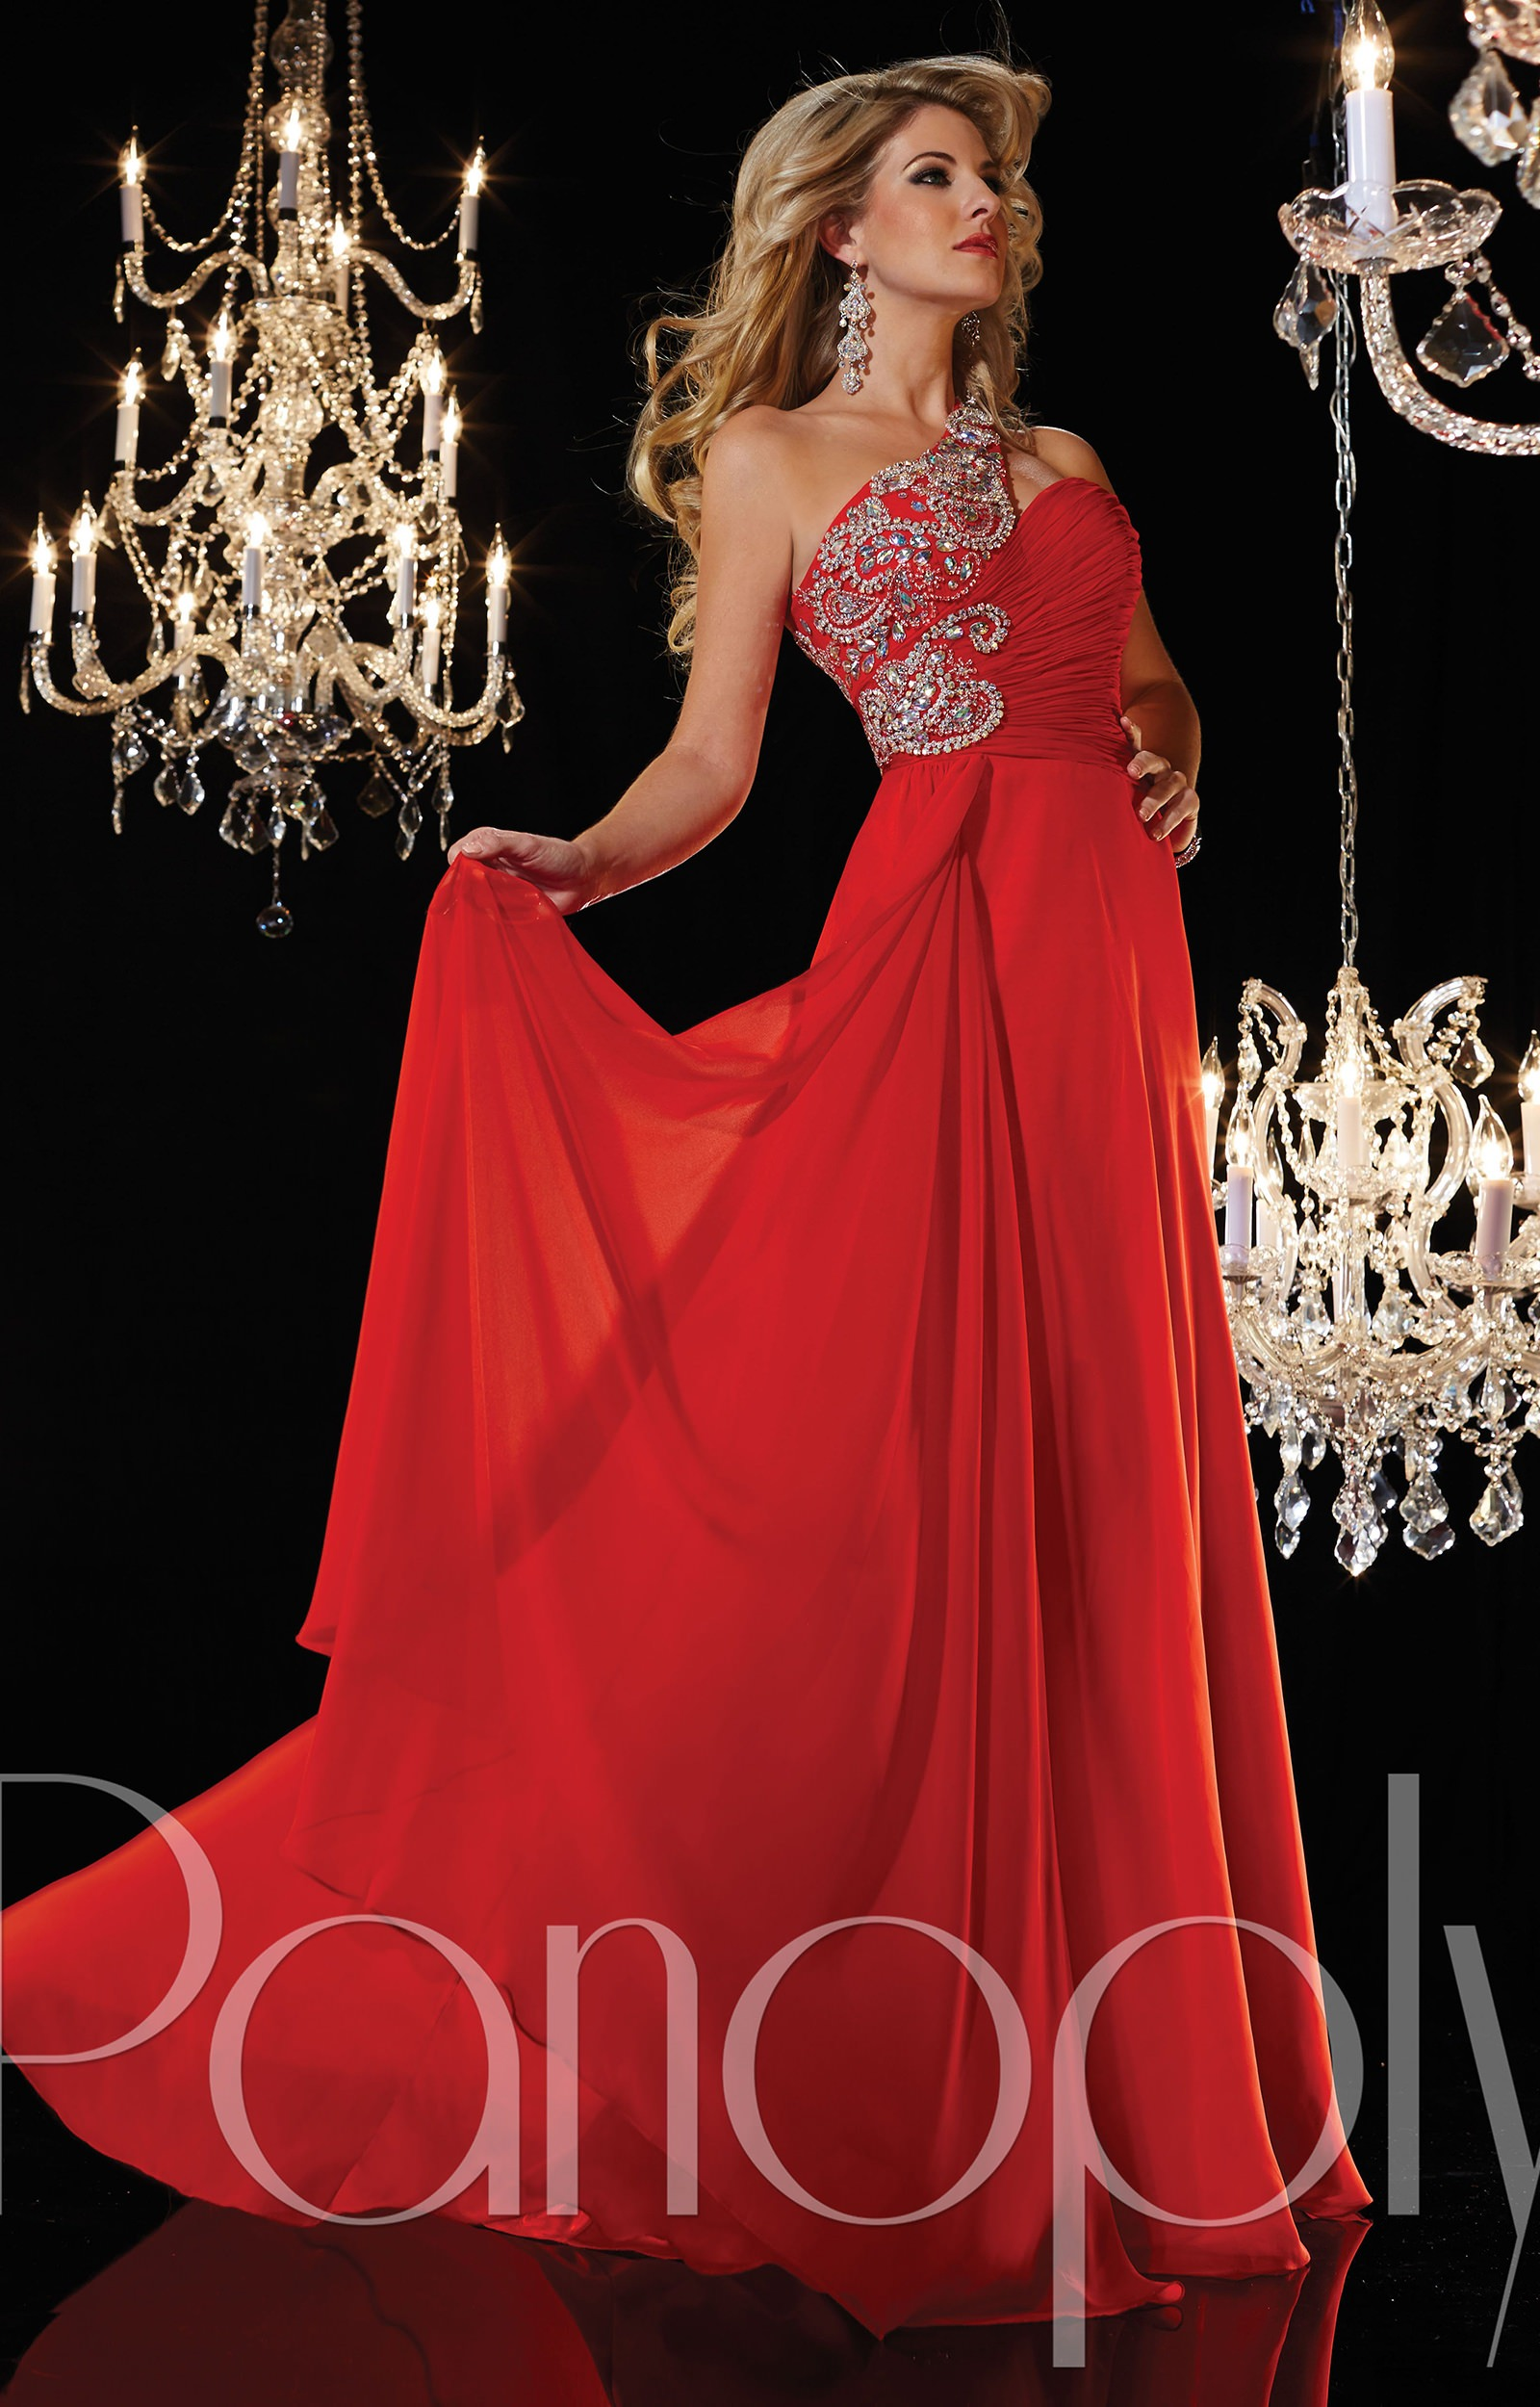 Panoply 14622 - This Girl is On Fire! Prom Dress